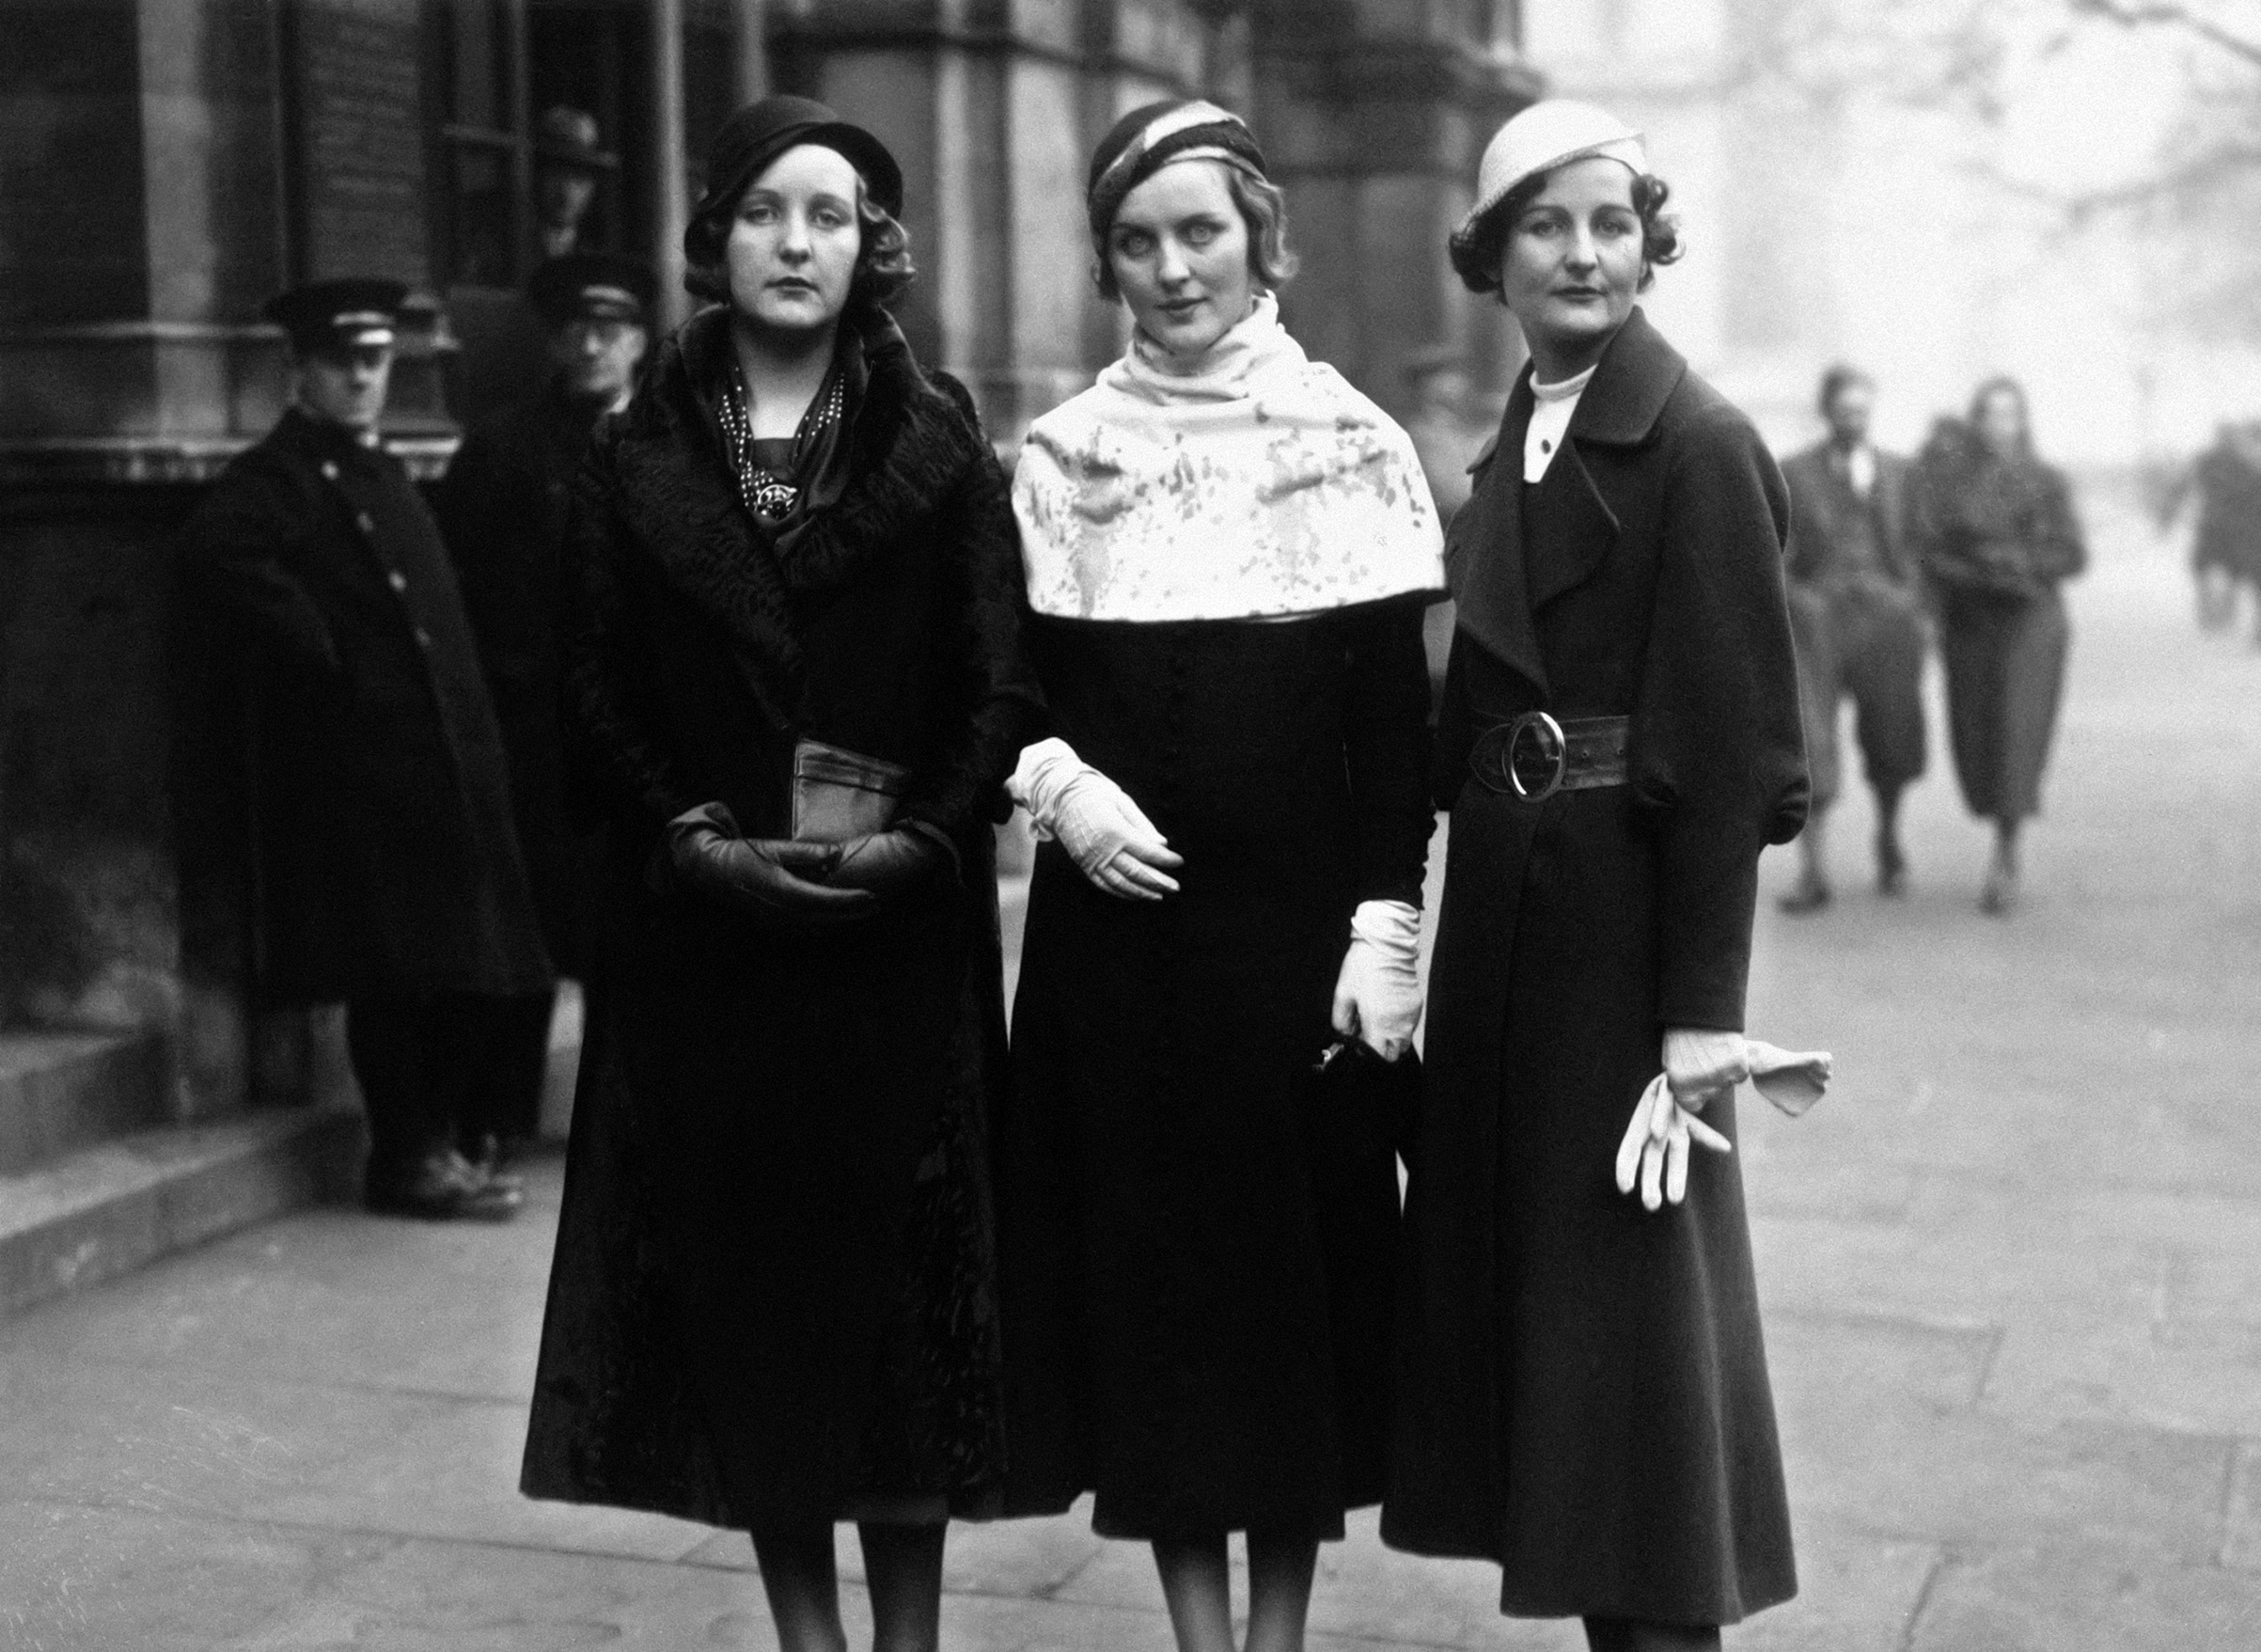 Three of the Mitford sisters, aristocrats and tabloid sensations, at Lord Stanley of Aldernay's wedding. (L-R) Unity Mitford, Diana Mitford and writer Nancy Mitford. Circa 1932.